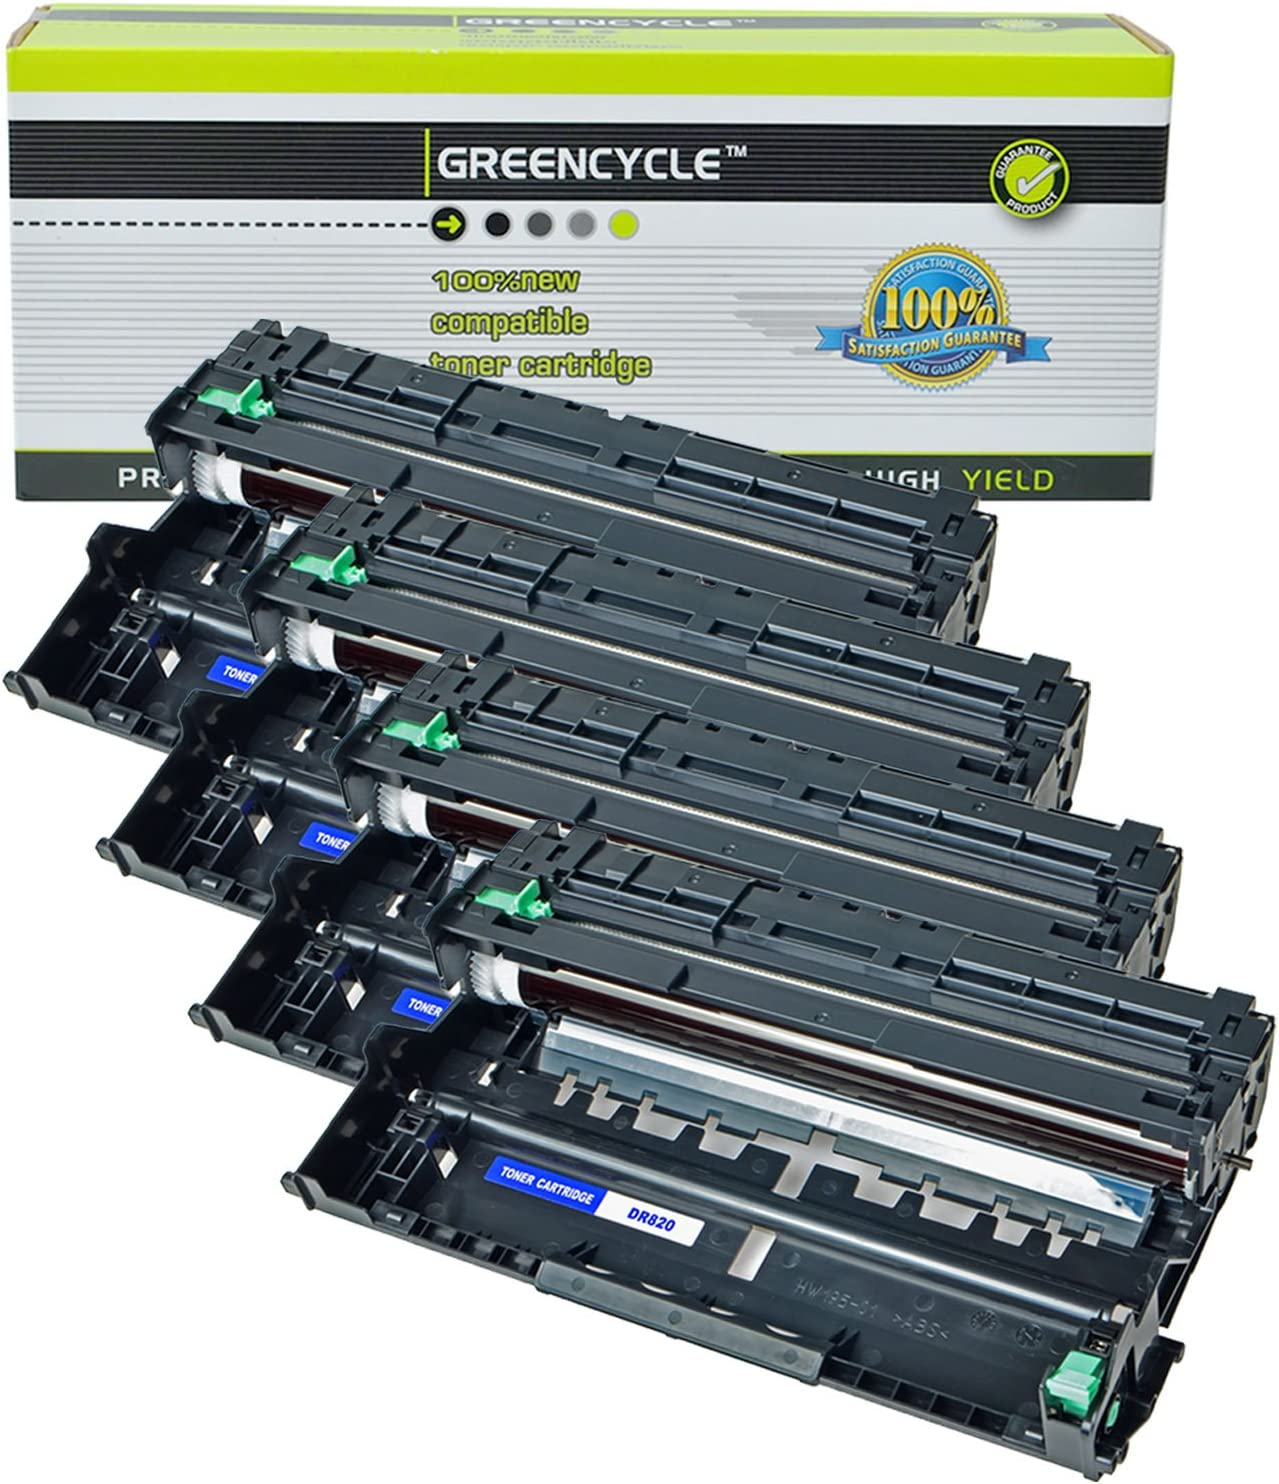 Black,4 Pack GREENCYCLE Compatible for Brother DR820 Drum Unit Replacement for DCP-L5500DN//L5600DN//L5650DN HL-L6200DW//L6200DWT//L5200DWT//L5200DW//L5100DN//L5000D MFC-L5850DW//L5900DW Printer